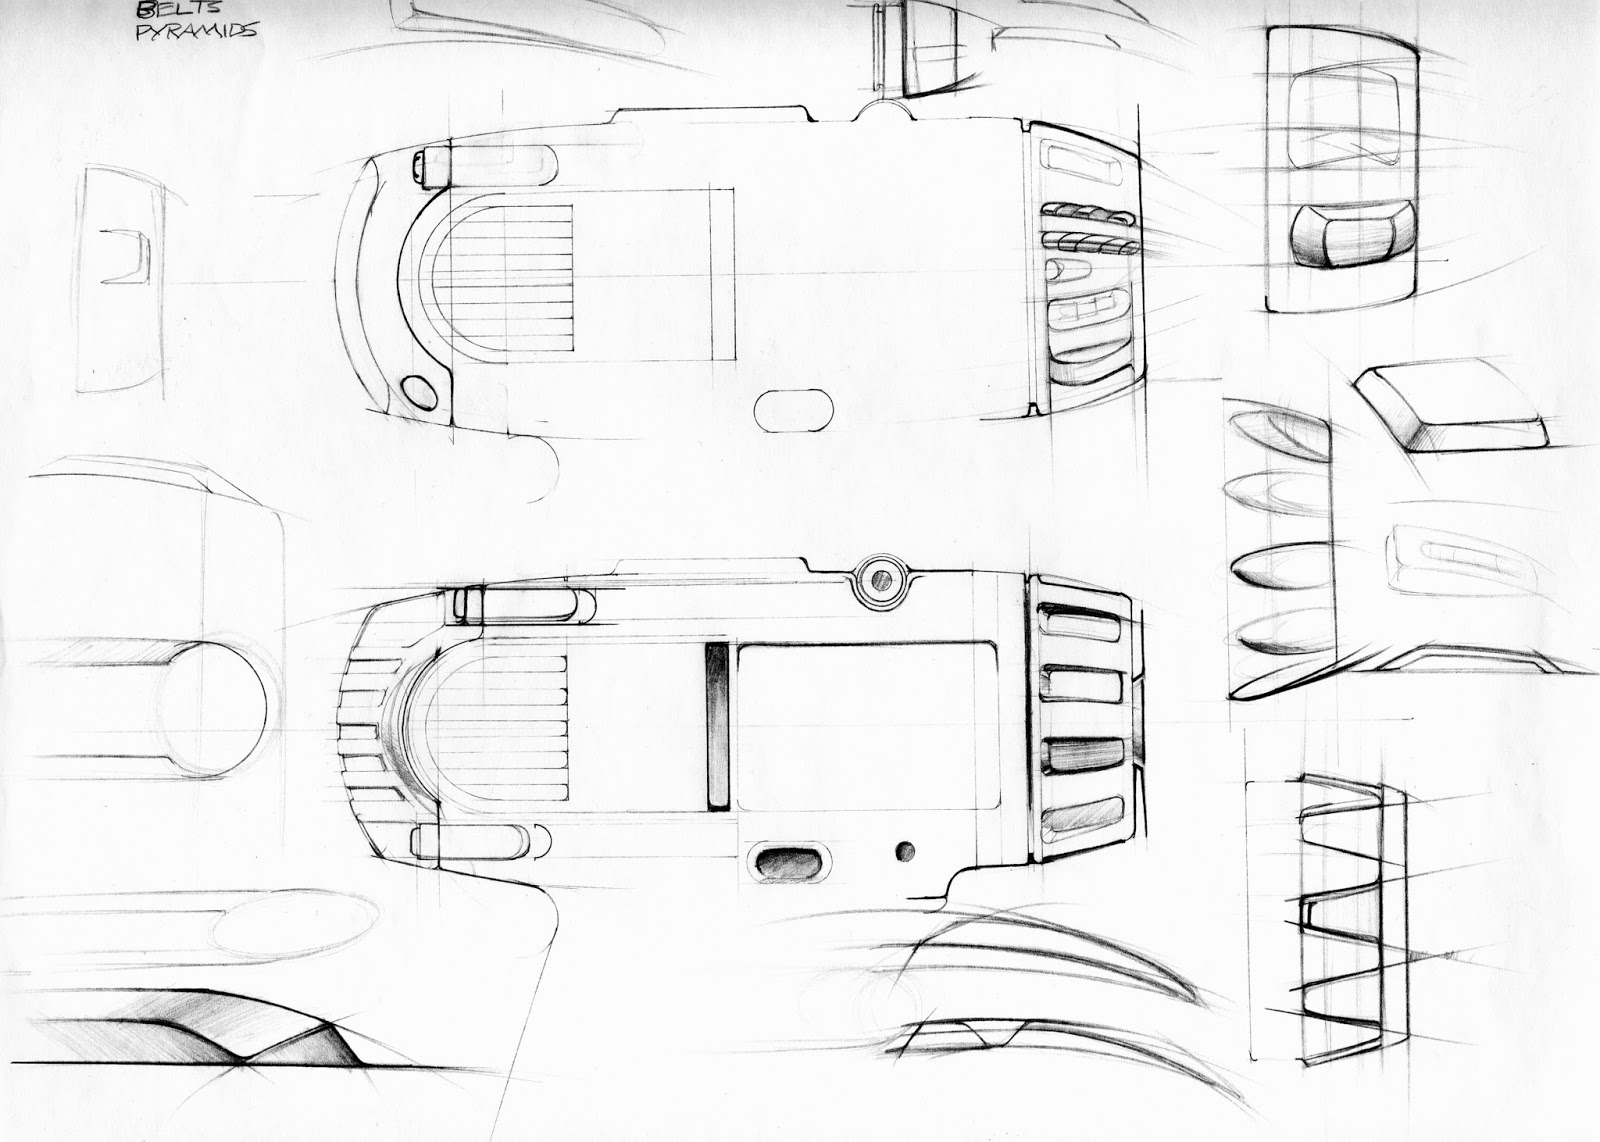 This next group of sketches shows development of the